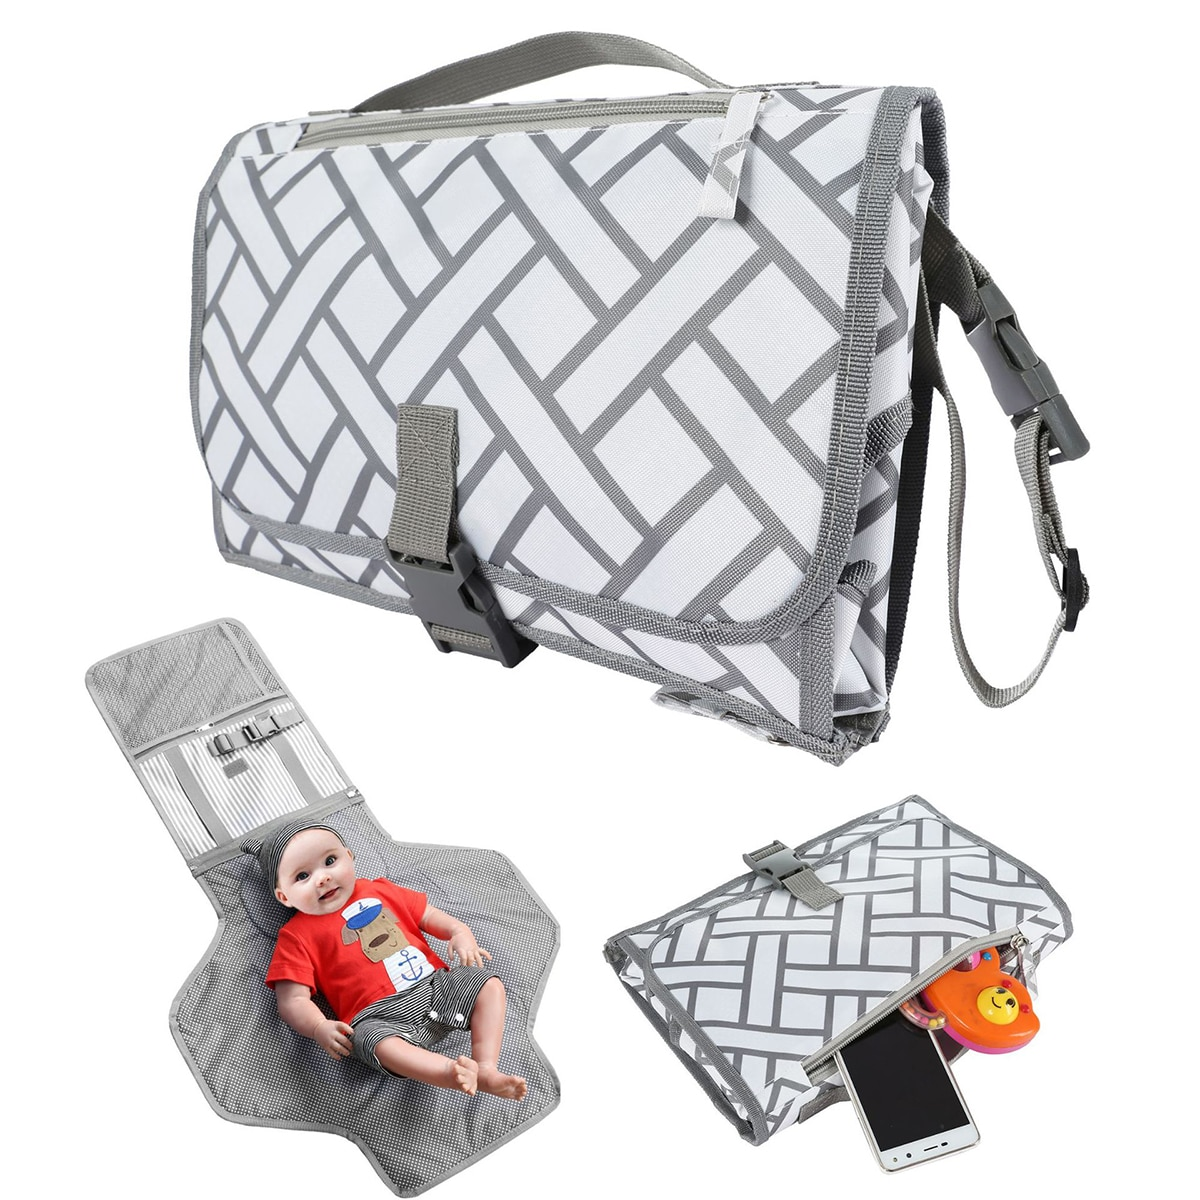 Baby Changing Pads Covers Portable Storage Bag Multipurpose Hanging Bag for Baby Carriage